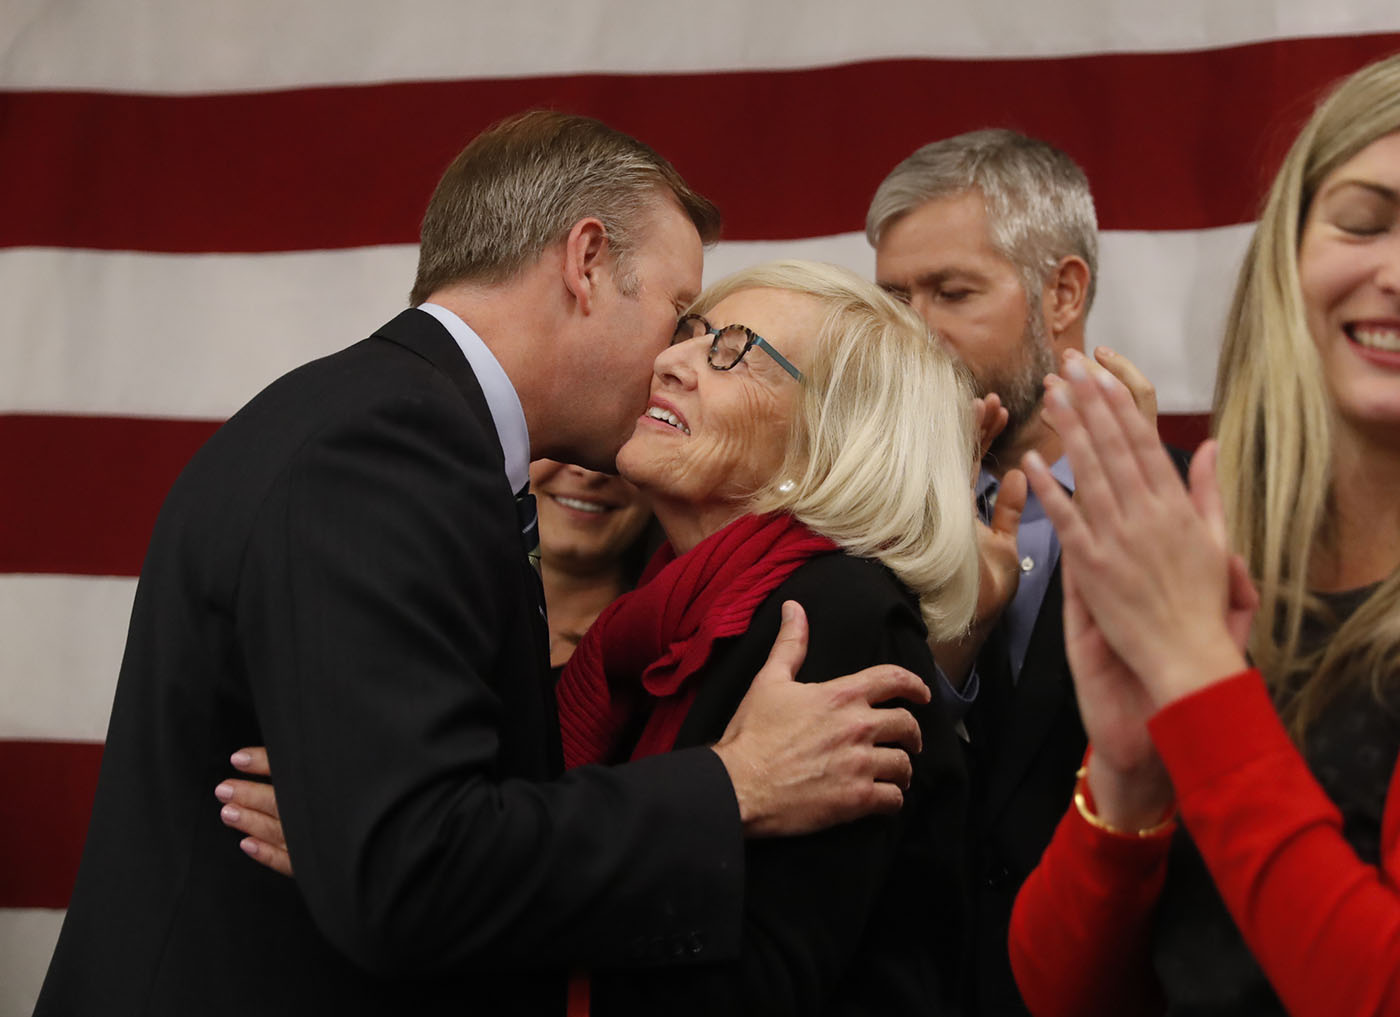 Chris Jacobs kisses his mom Pam Jacobs during the Erie County Republican Party's election night event at the Avant Building on Tuesday, Nov. 8, 2016. (Harry Scull Jr./Buffalo News)